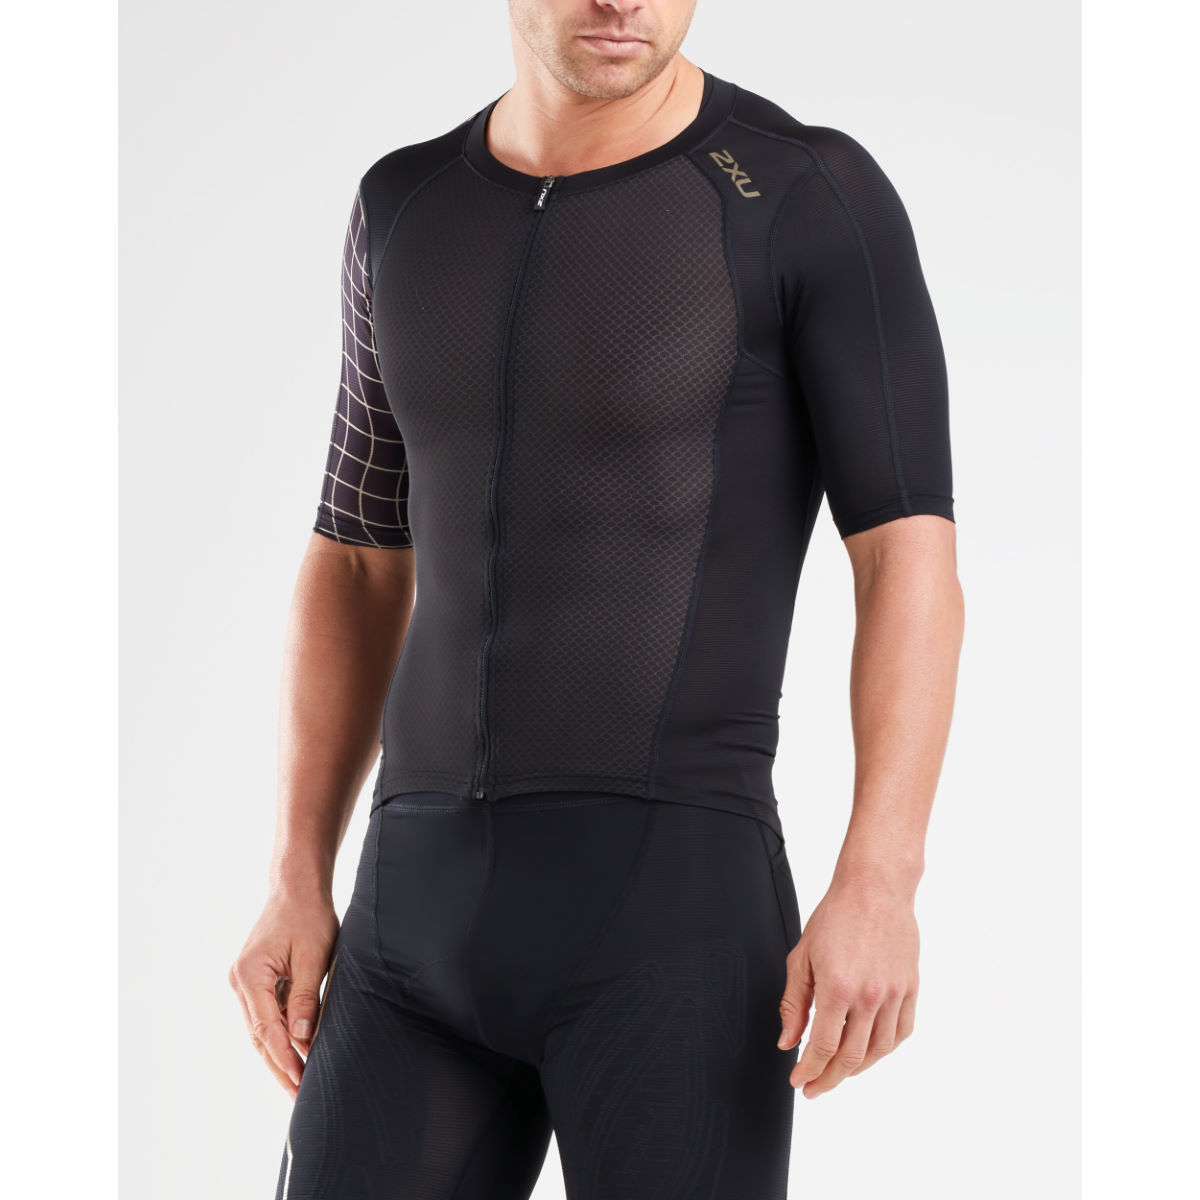 2Xu 2XU Compression Sleeved Top   Compression Tops